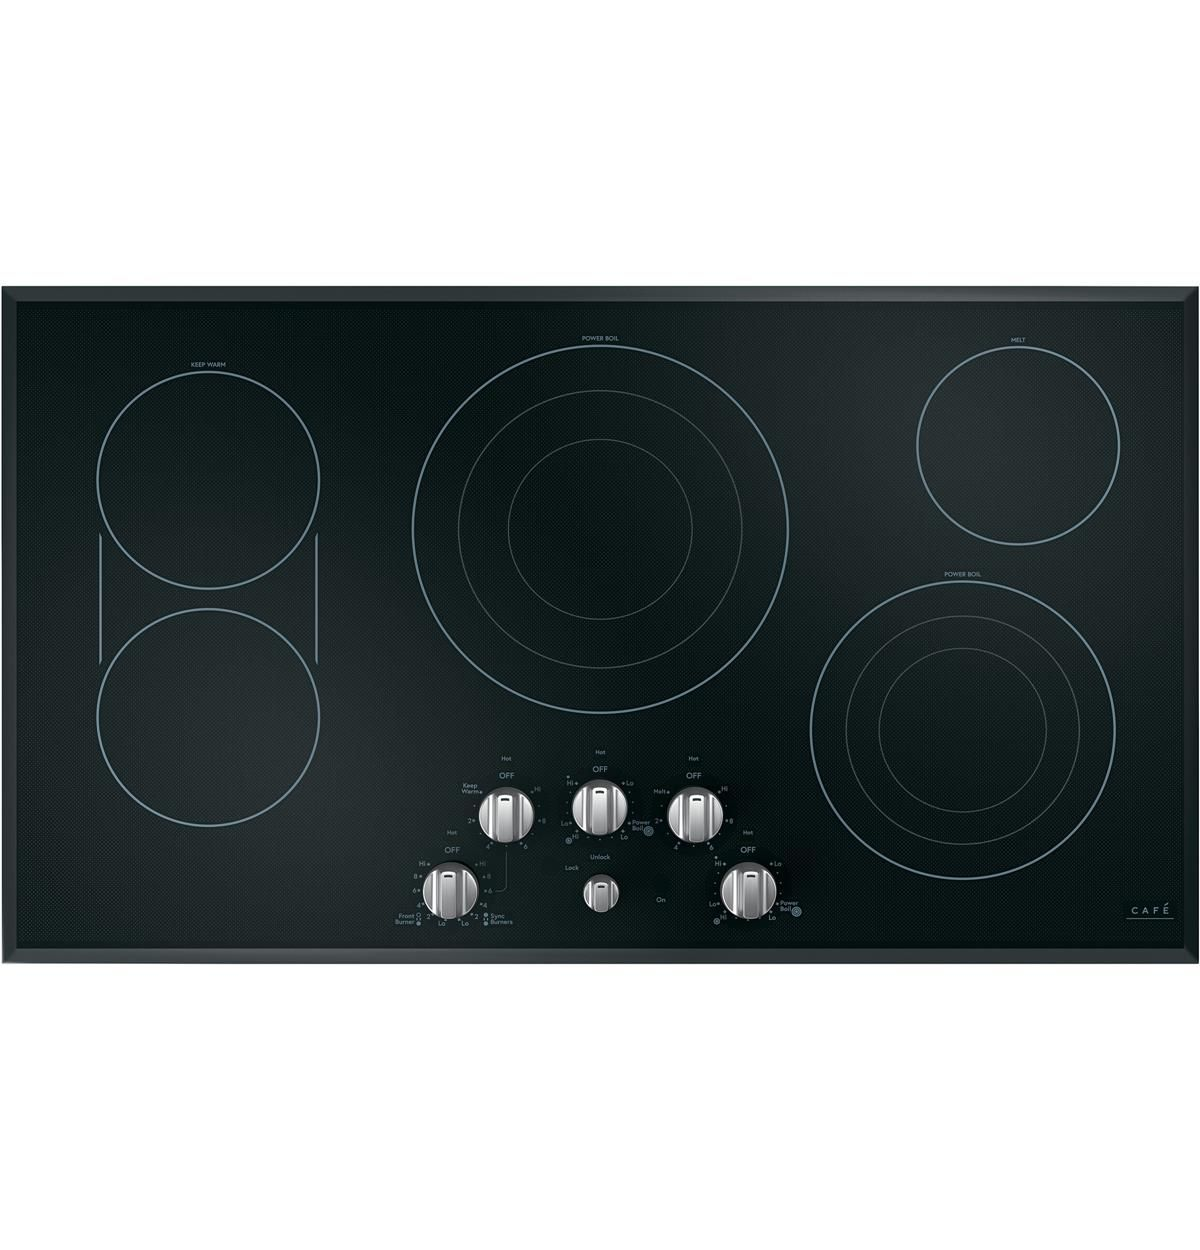 Ge Cafe Cep70362ms1 36 Built In Electric Cooktop Black